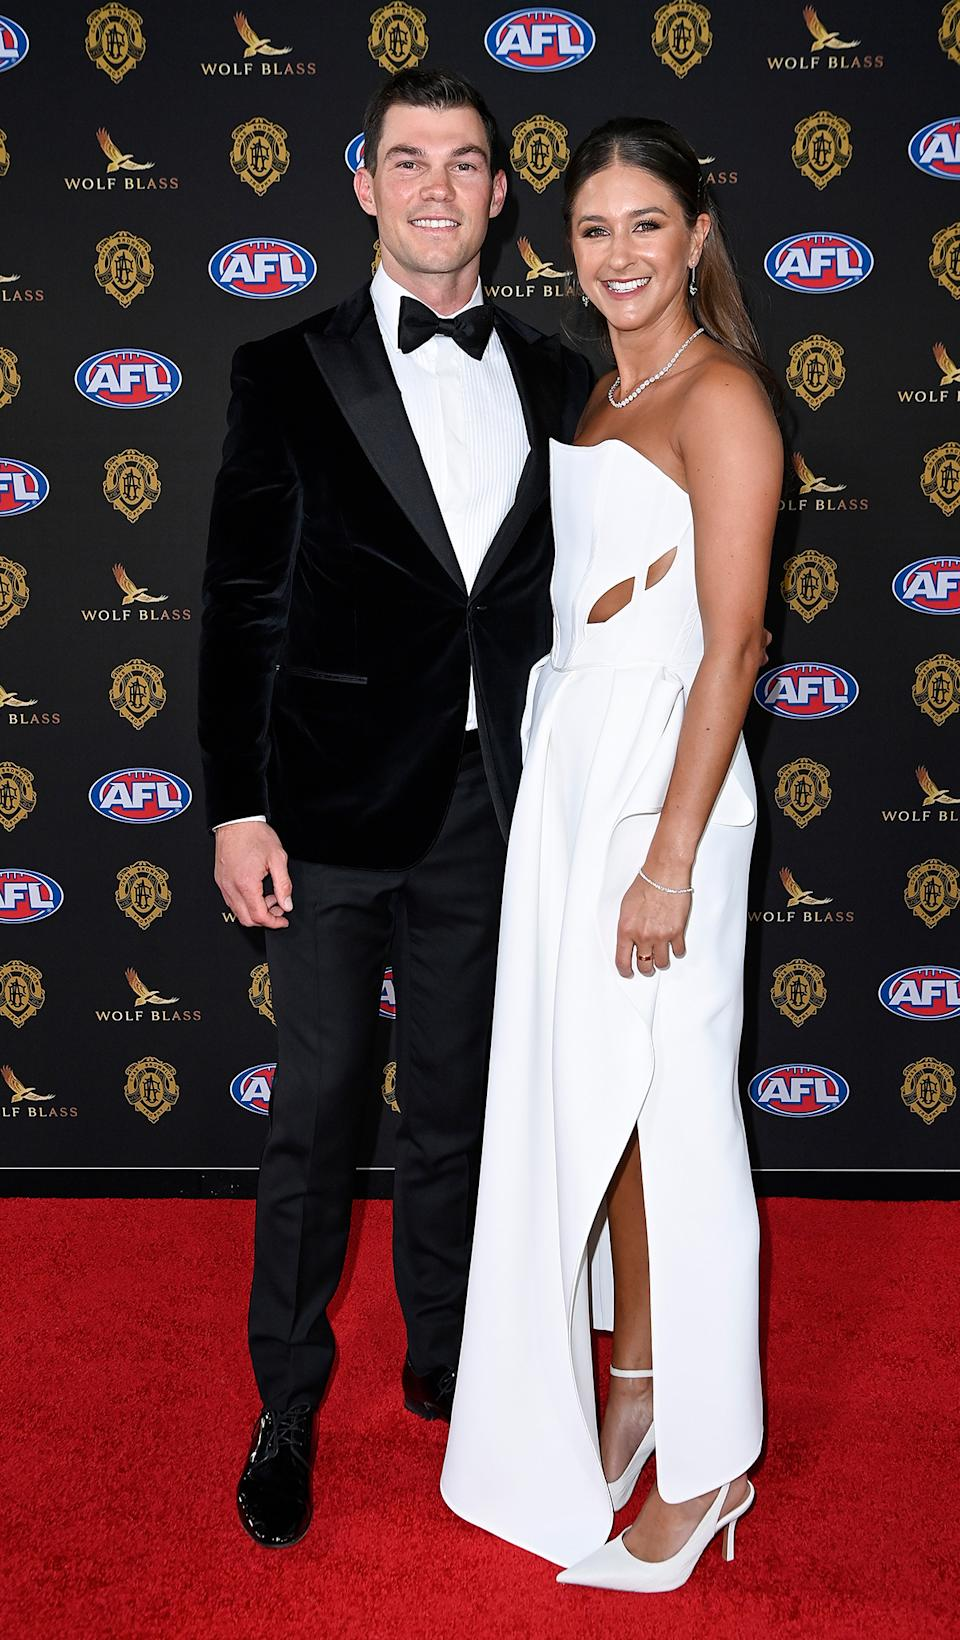 Jaegar O'Meara and Tory Packer at the Brownlow Medal 2021